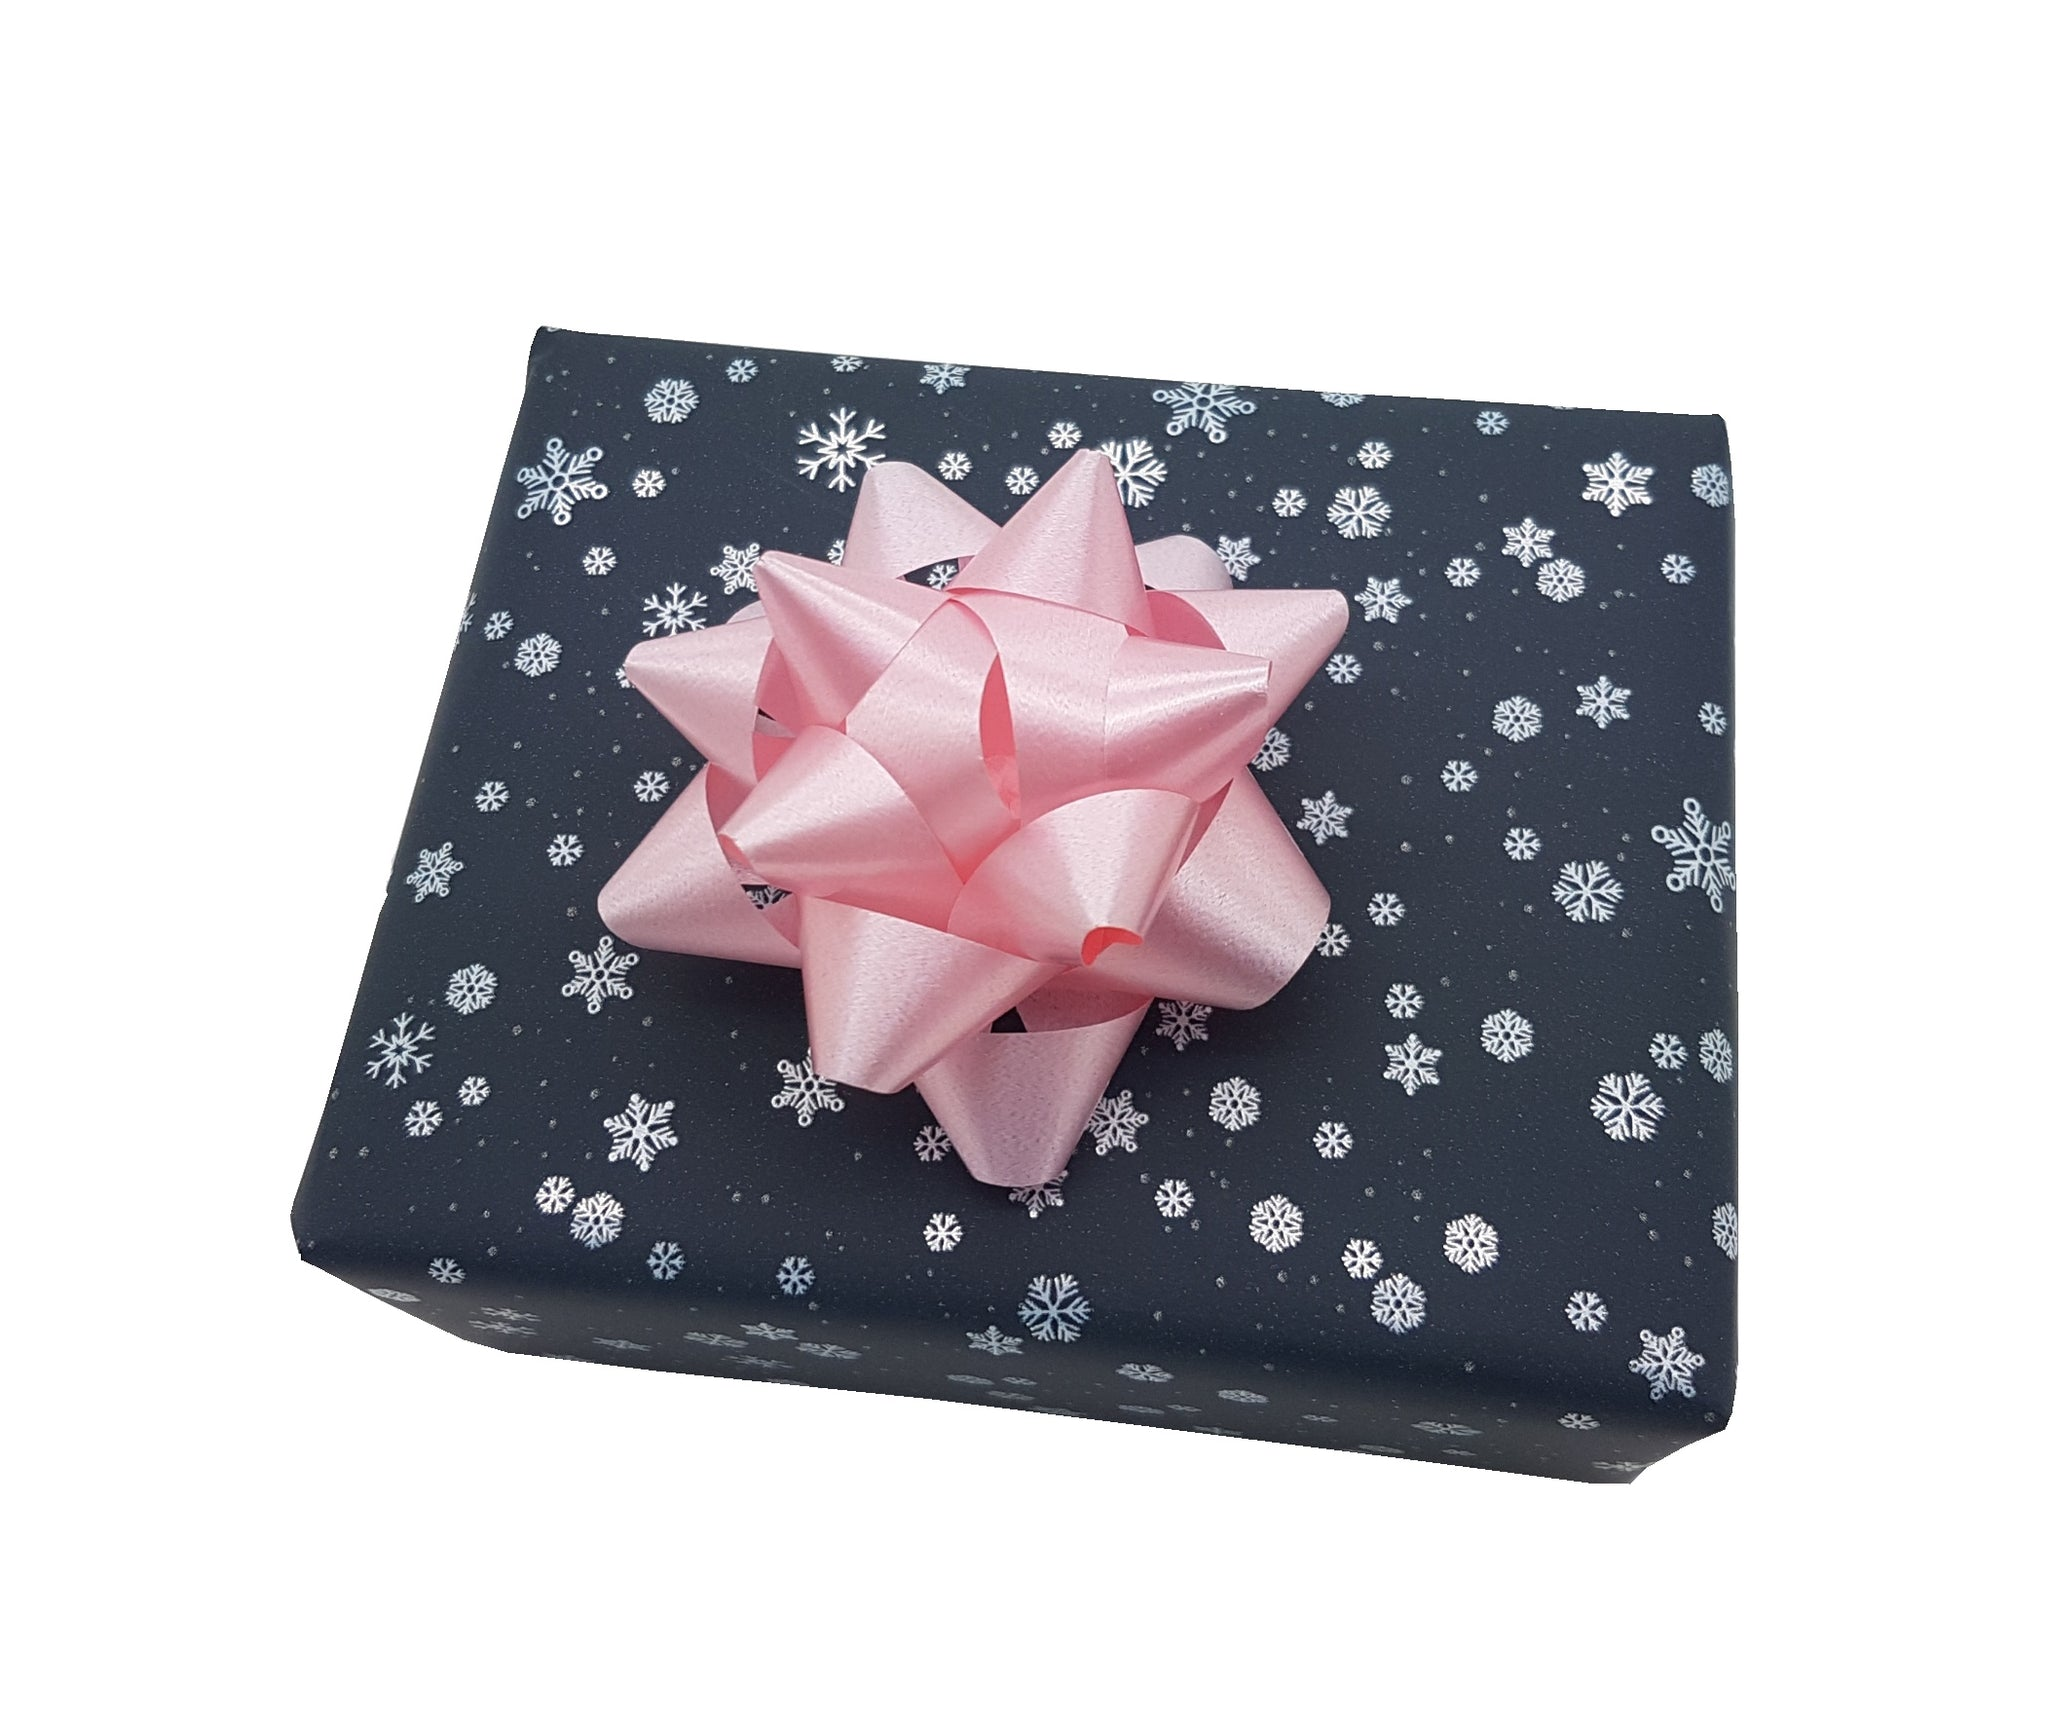 Dainty Snowflake Dark Grey and White Gift Wrap Roll